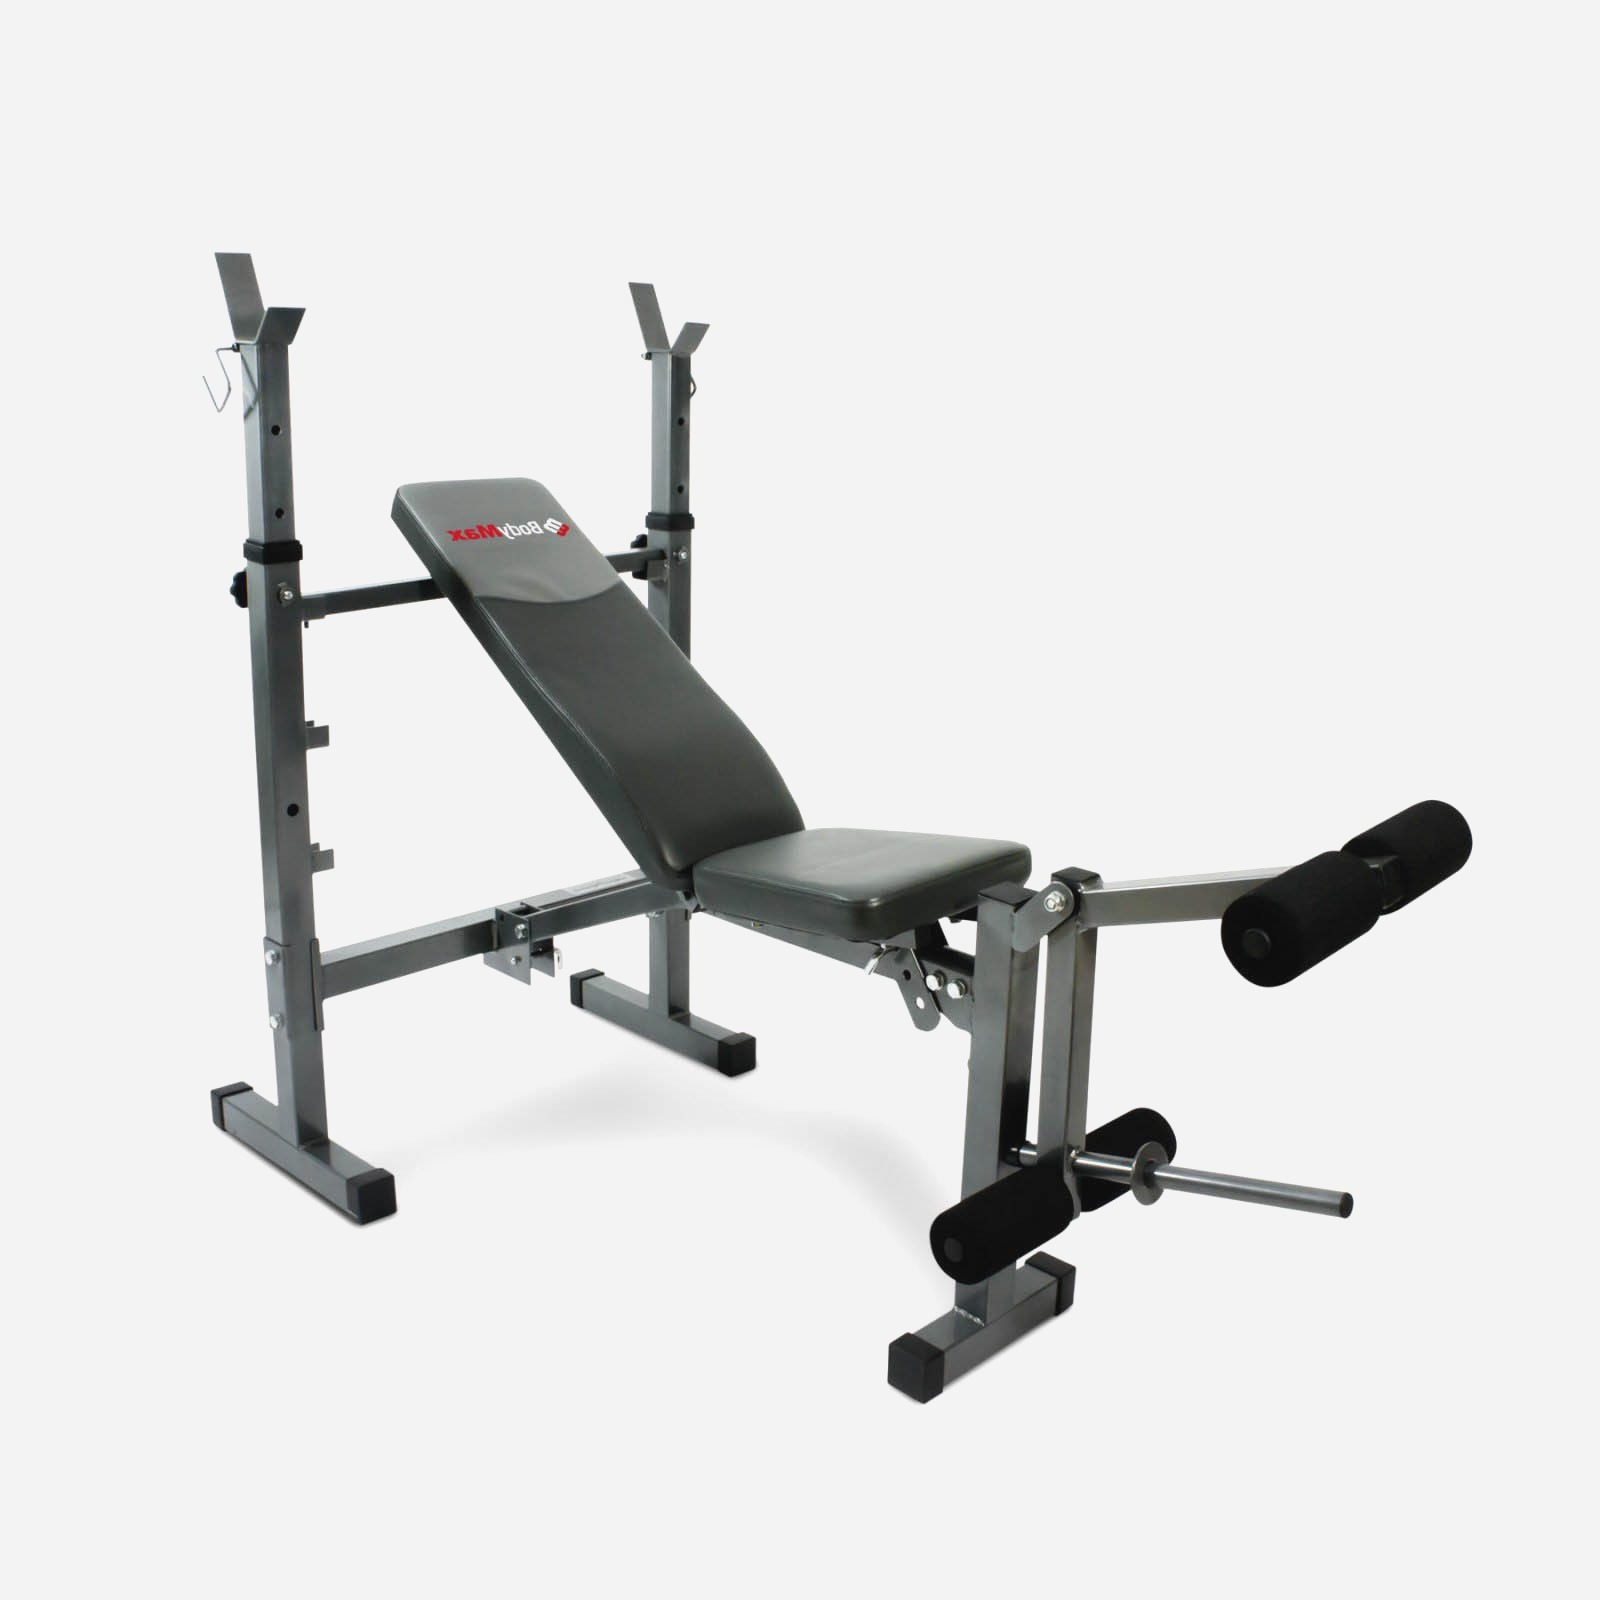 Cheap Flat Weight Bench | Powerhouse Weight Bench | Bench and Weight Set